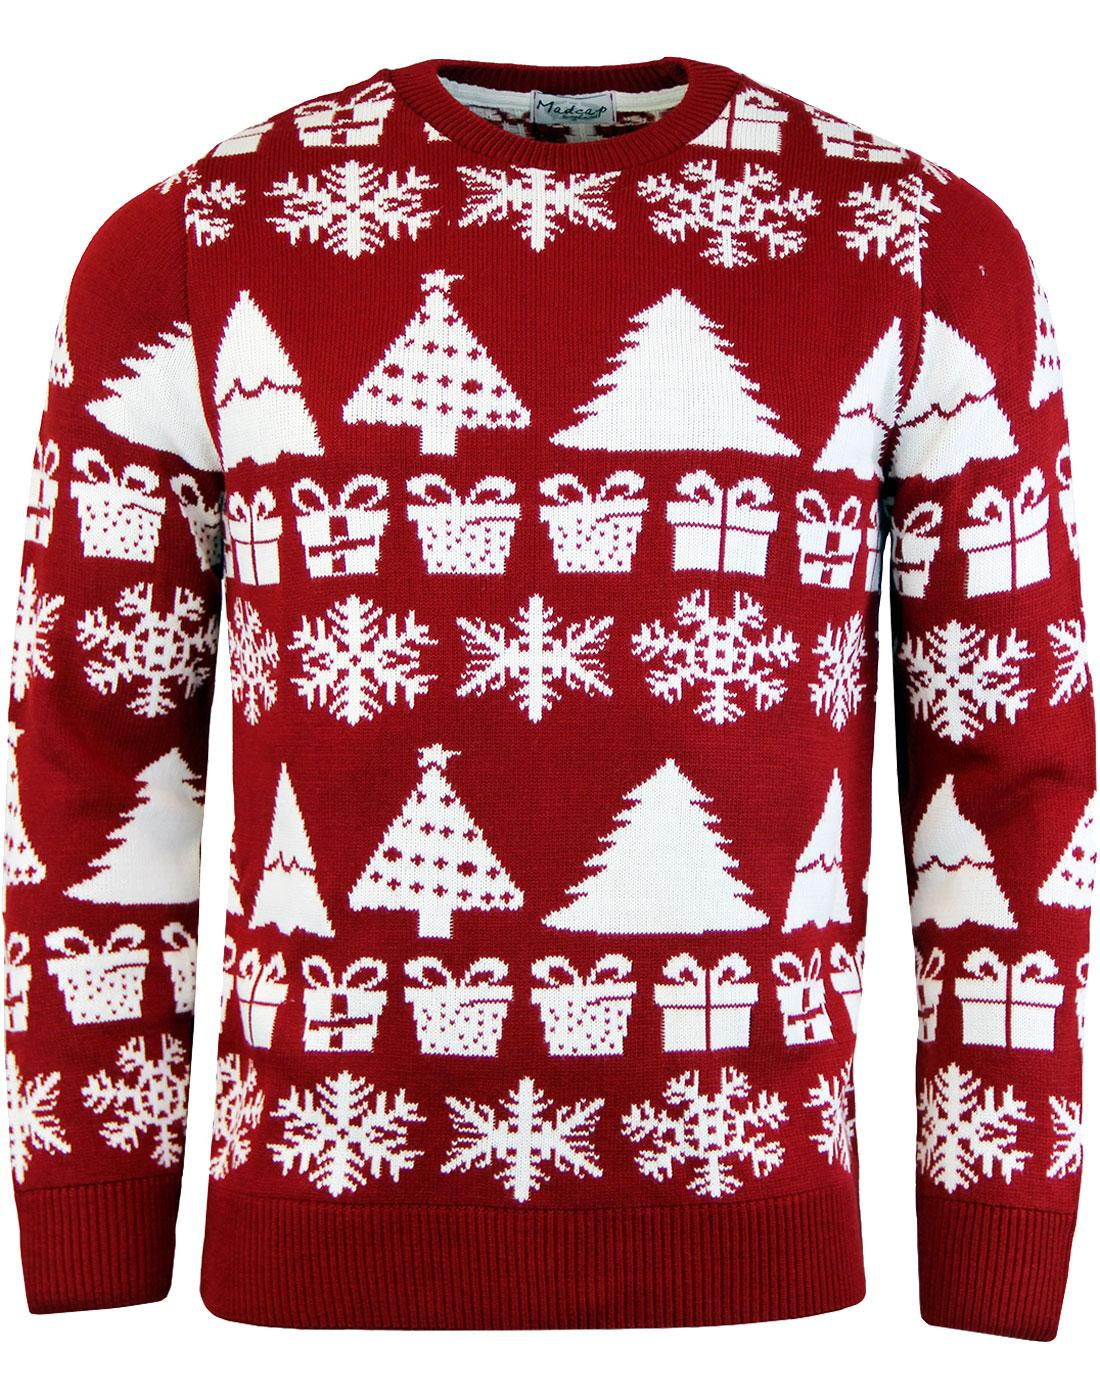 The Night Before Christmas Jumper - Retro knit Top